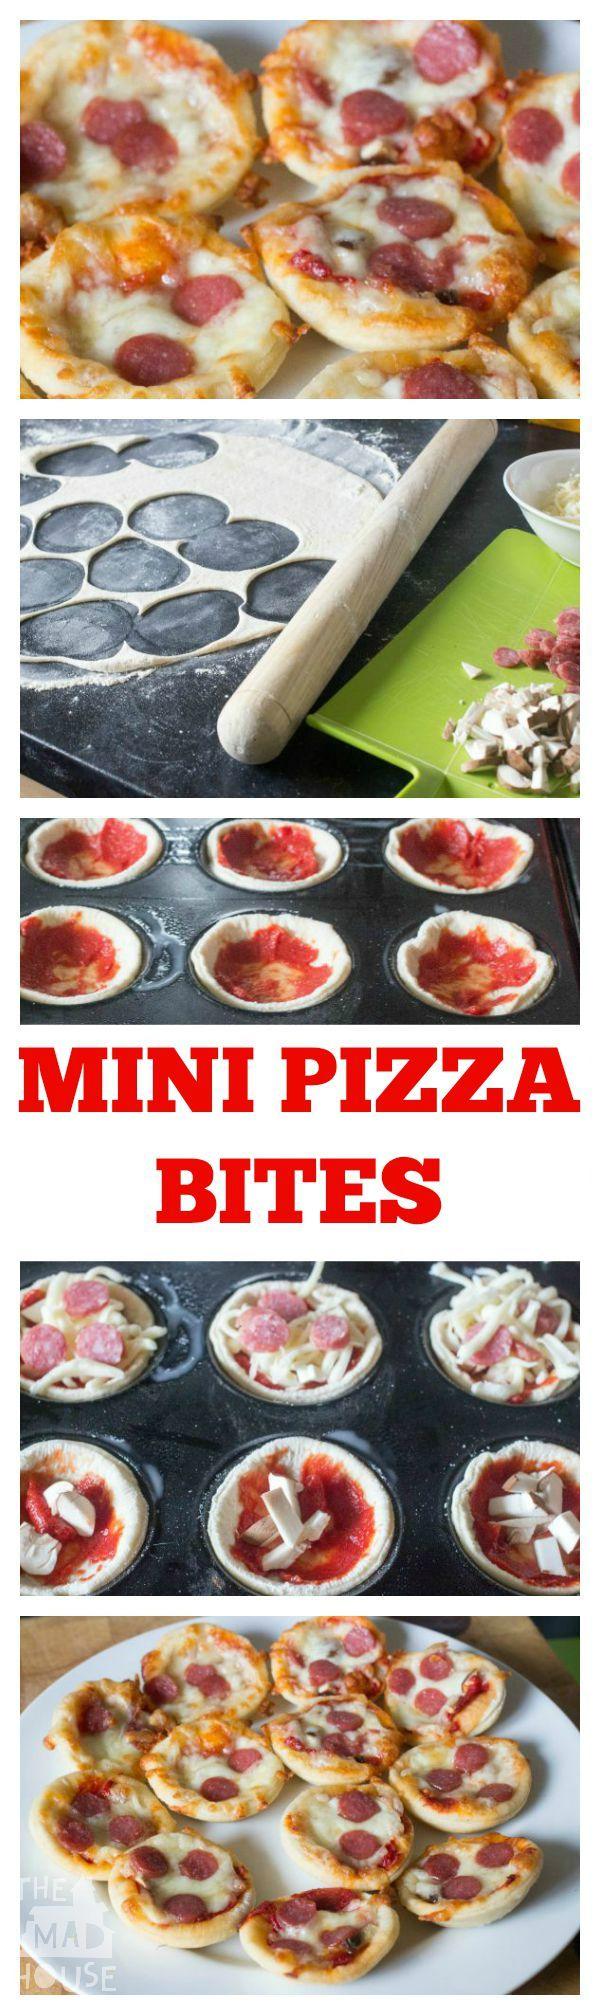 mini pizza bites tall